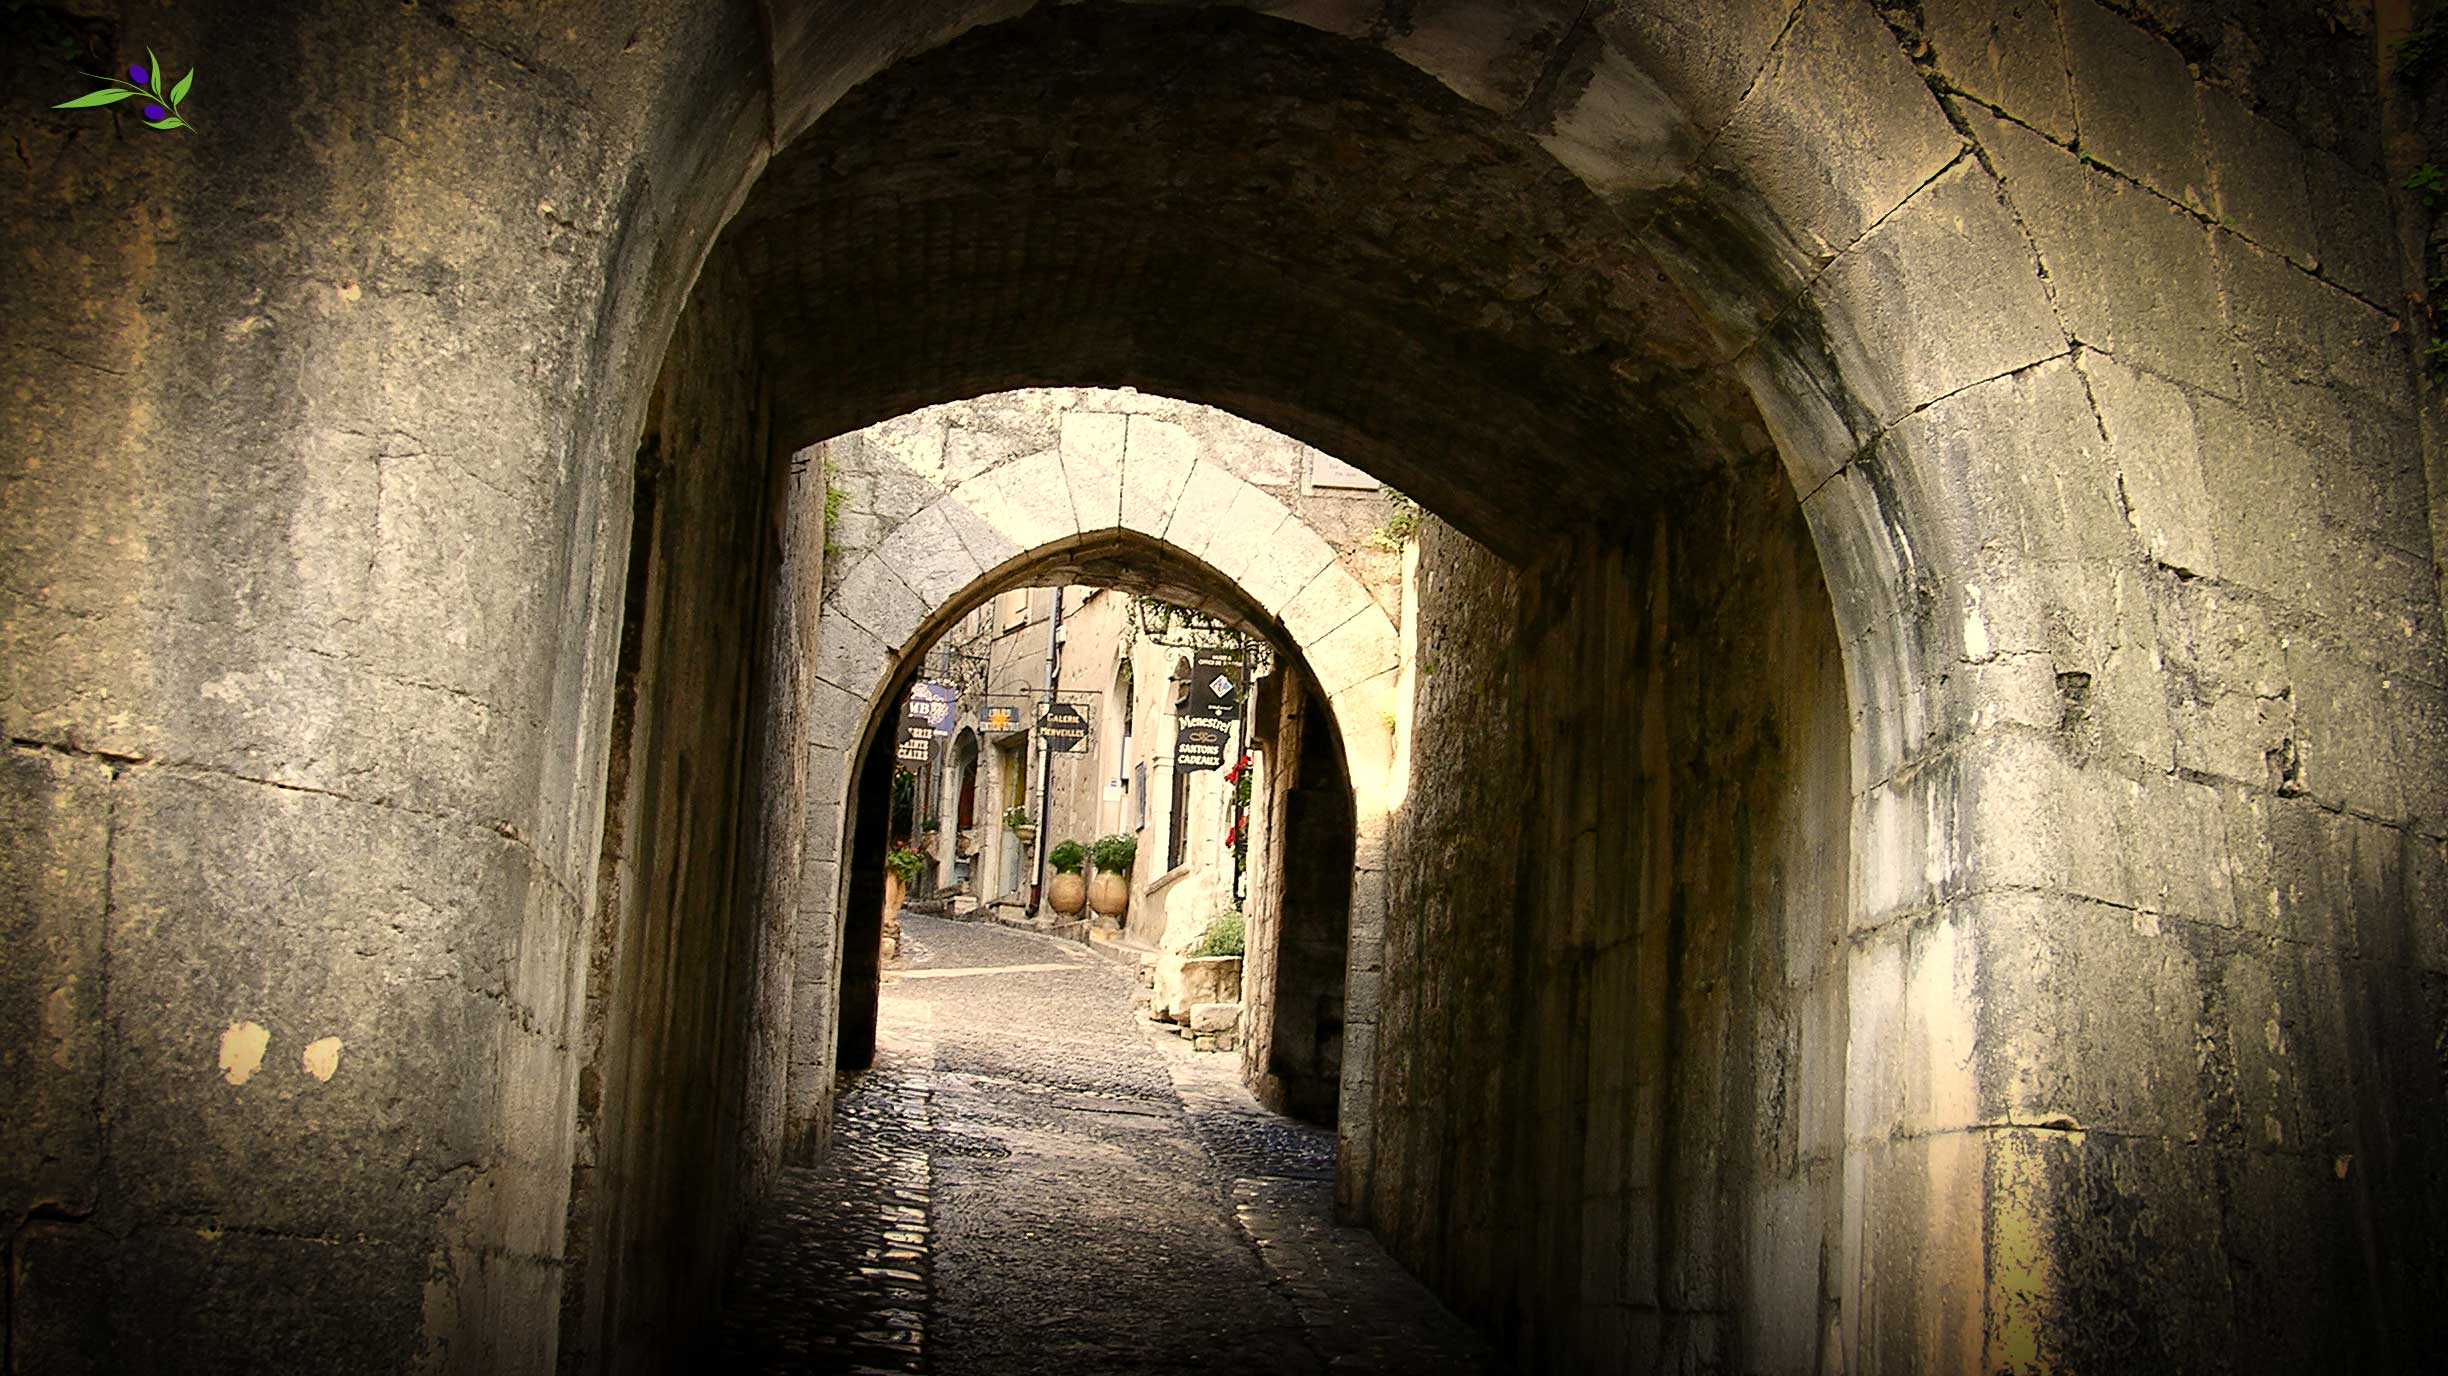 The entrance to St Paul de Vence